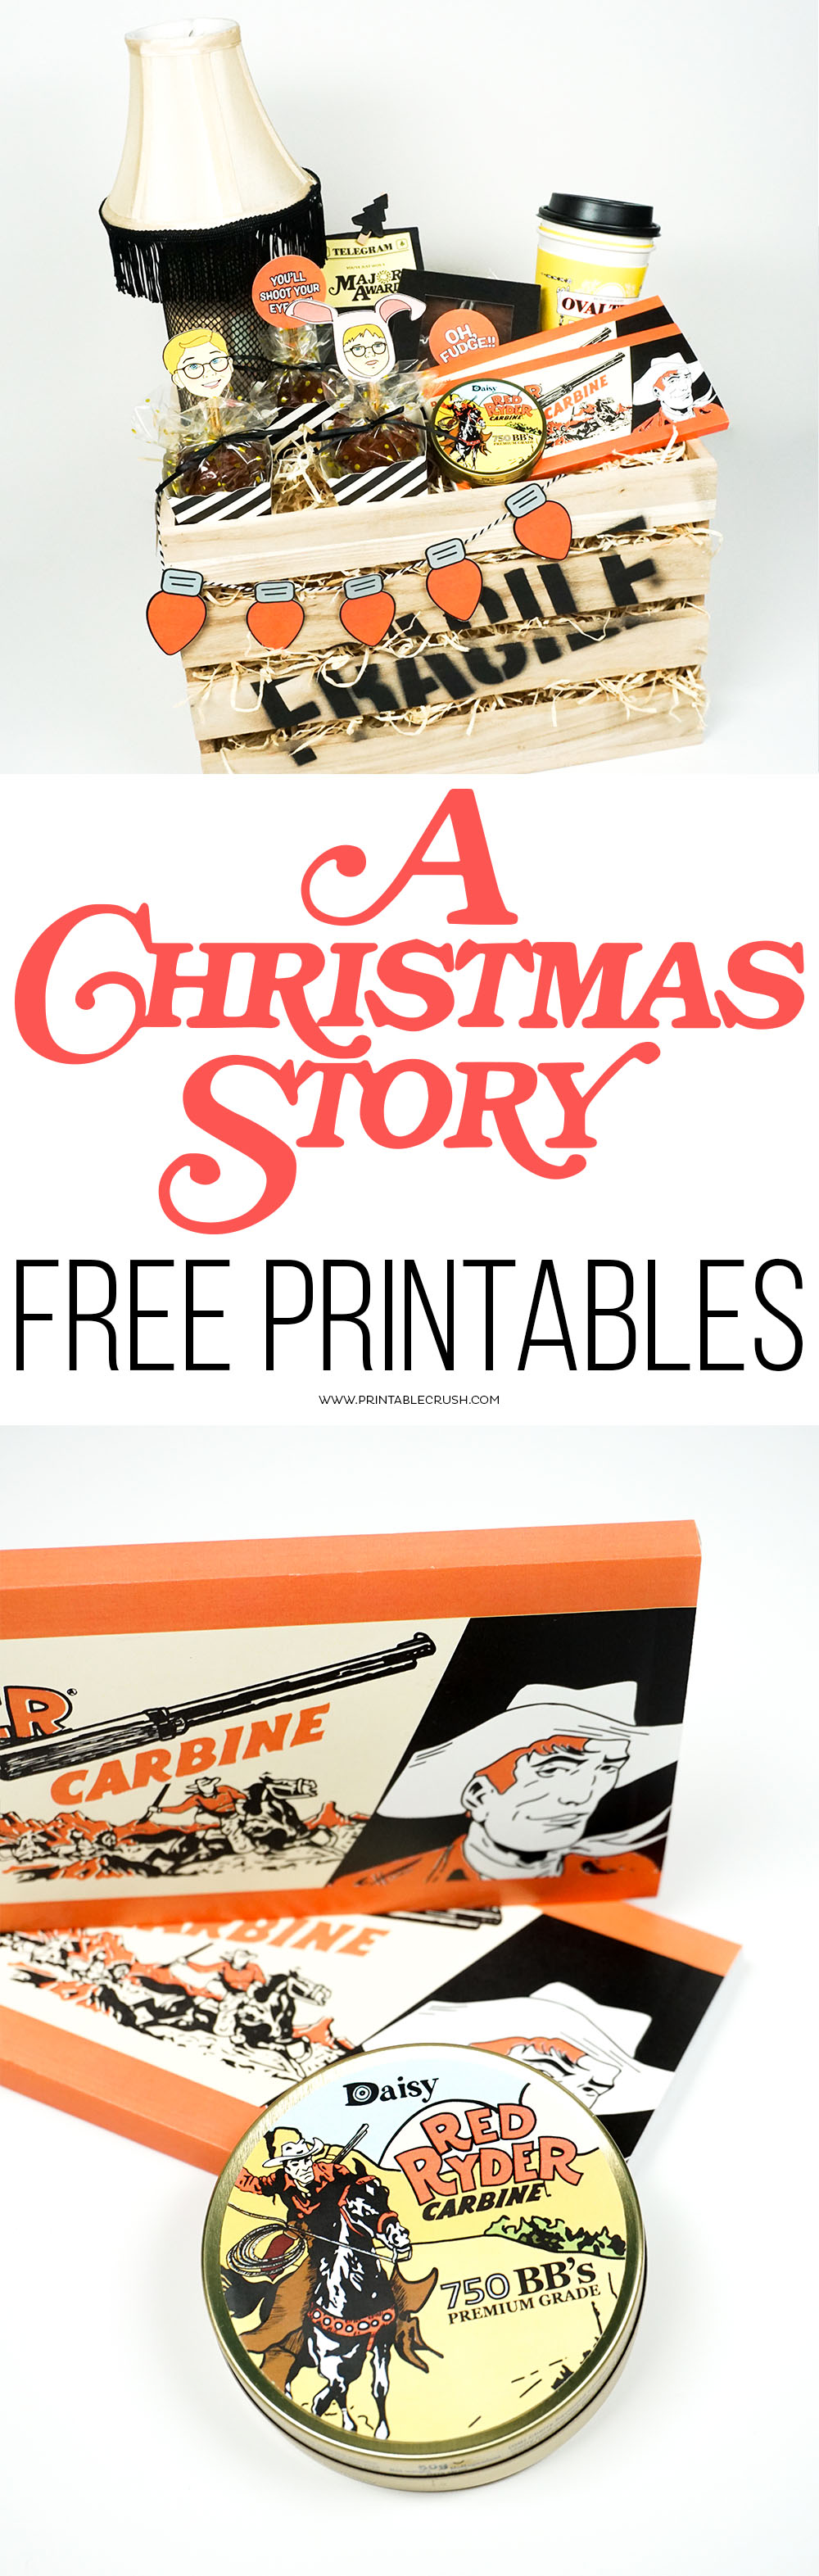 Challenger image in free printable christmas story